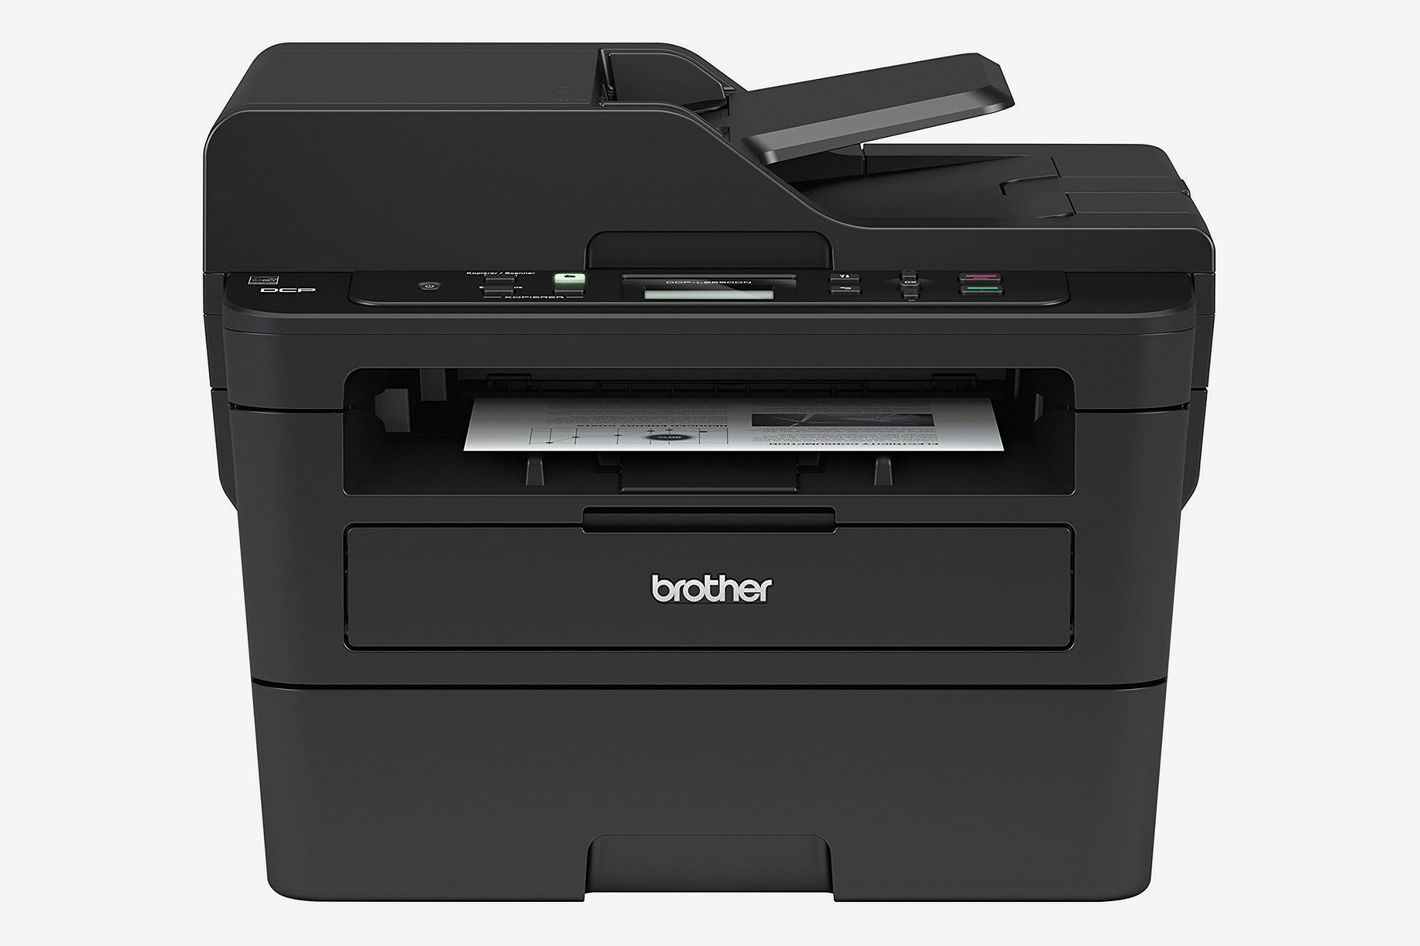 Brother Monochrome Compact Multifunction Printer DCPL2550DW